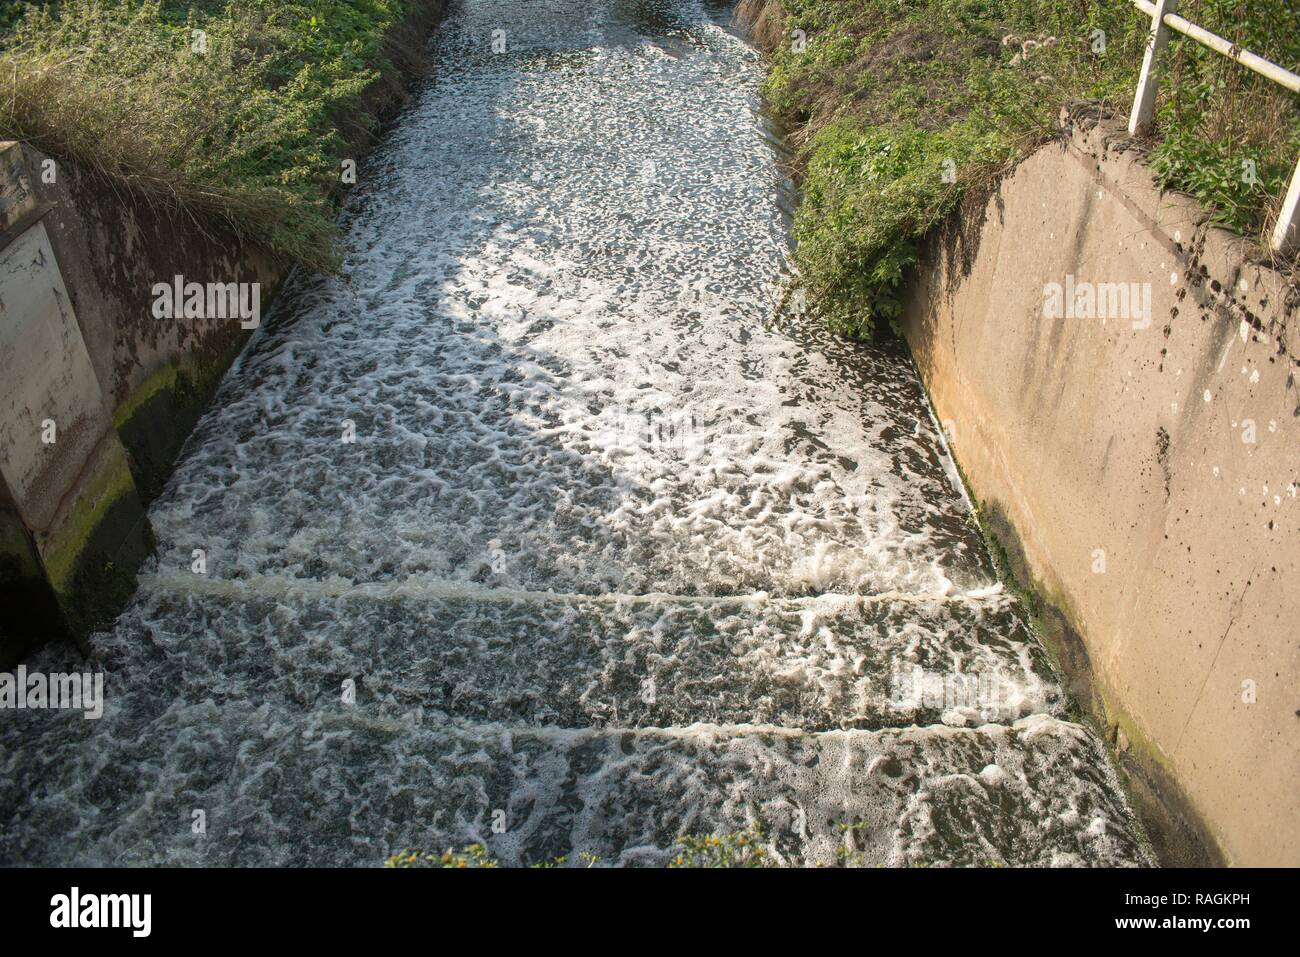 Wastewater discharging from sewage treatment plant into river, West Midlands, UK. - Stock Image